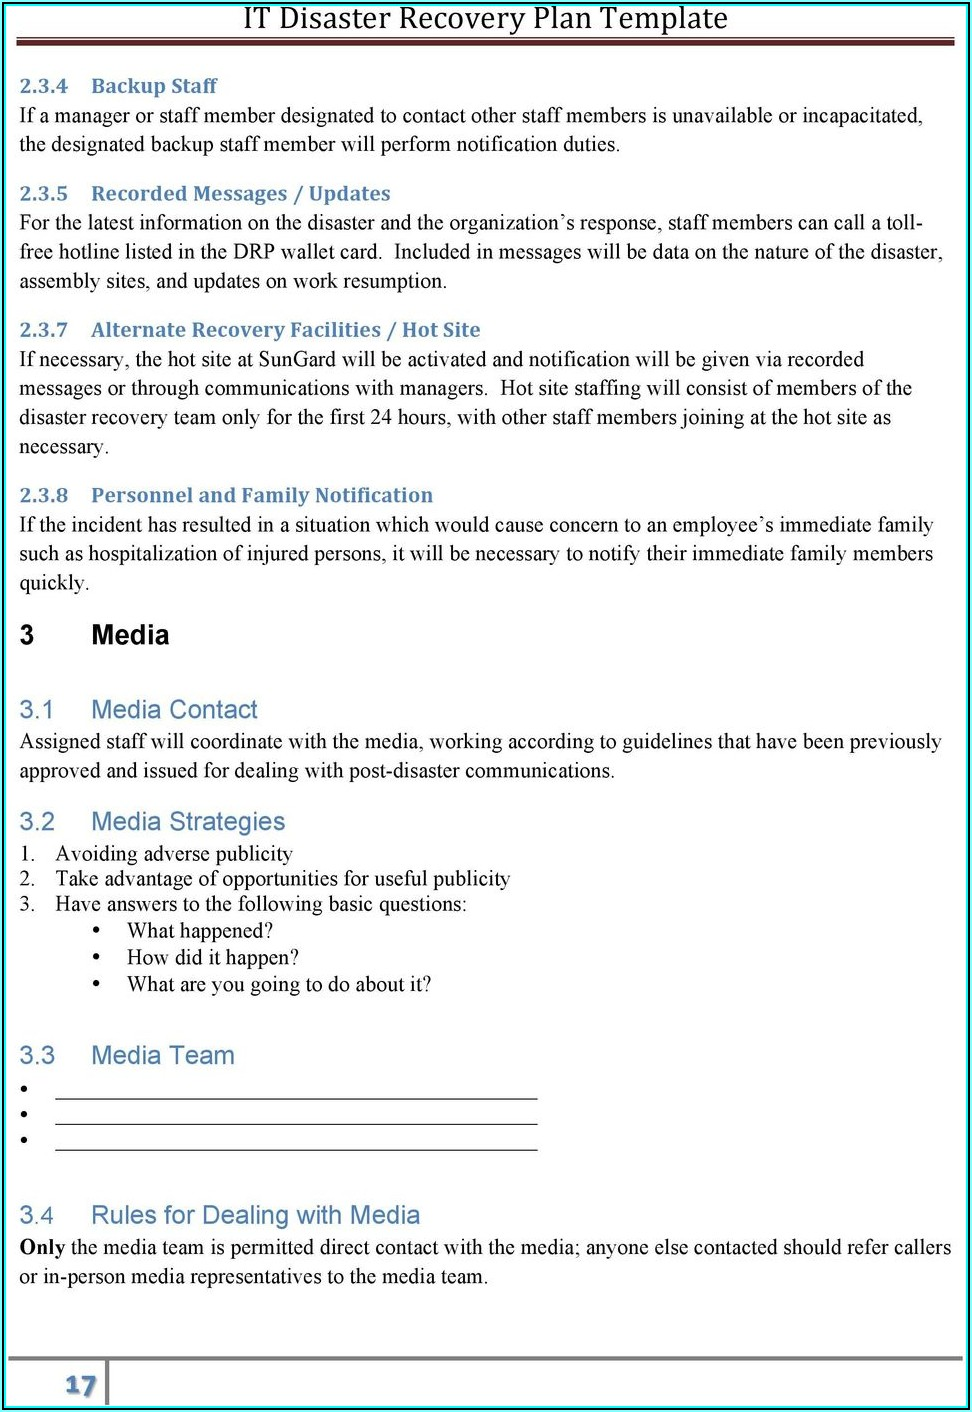 Free Disaster Recovery Plan Template